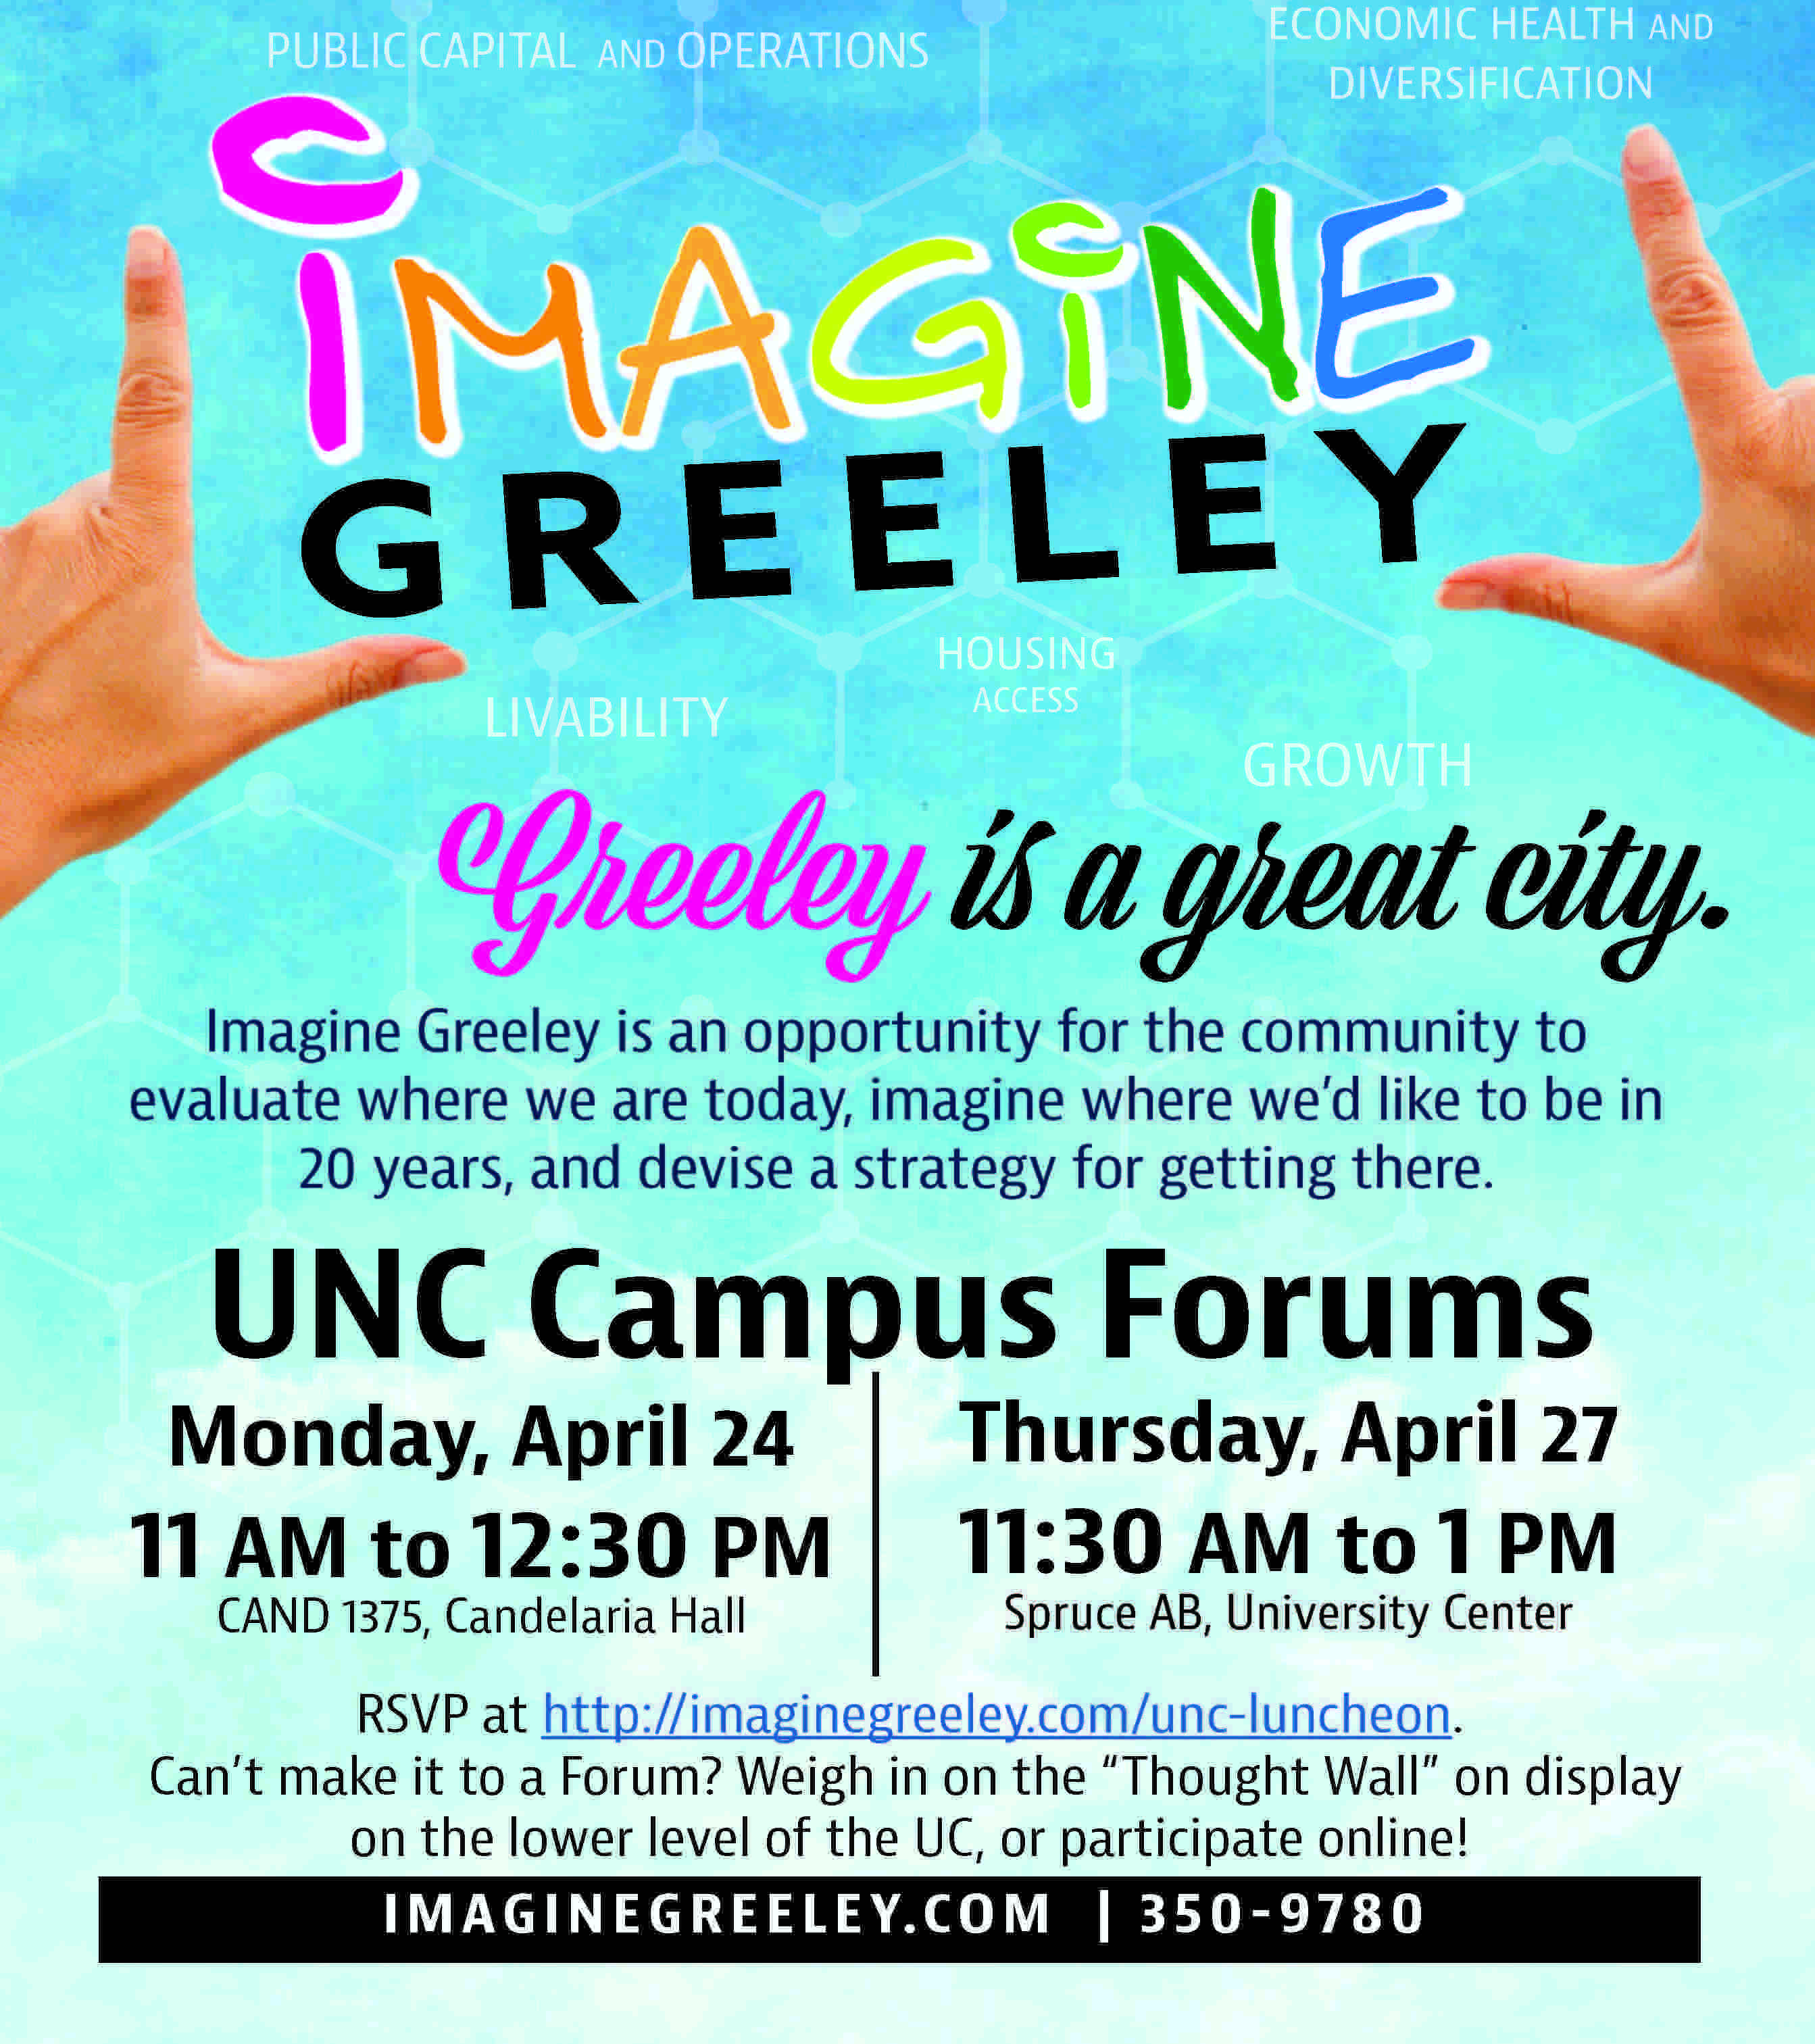 A colorful poster for imagine greeley events